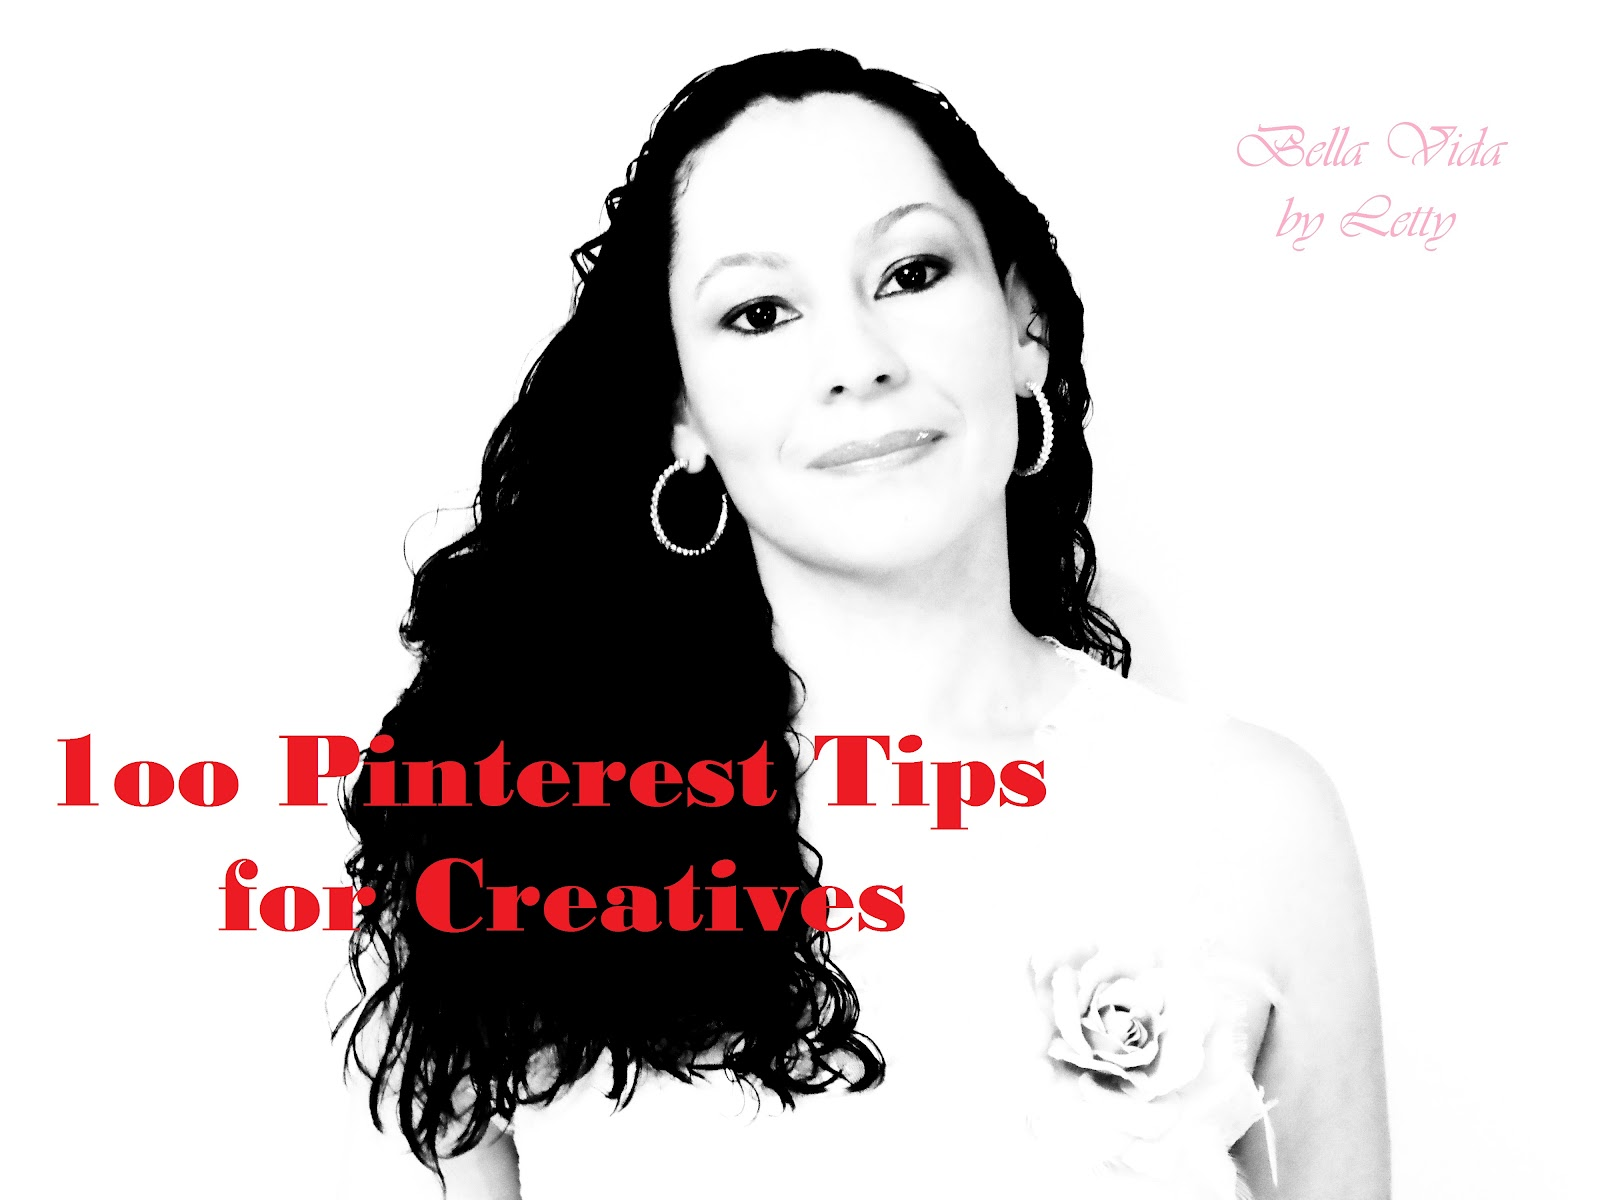 100 Pinterest Tips for Creatives